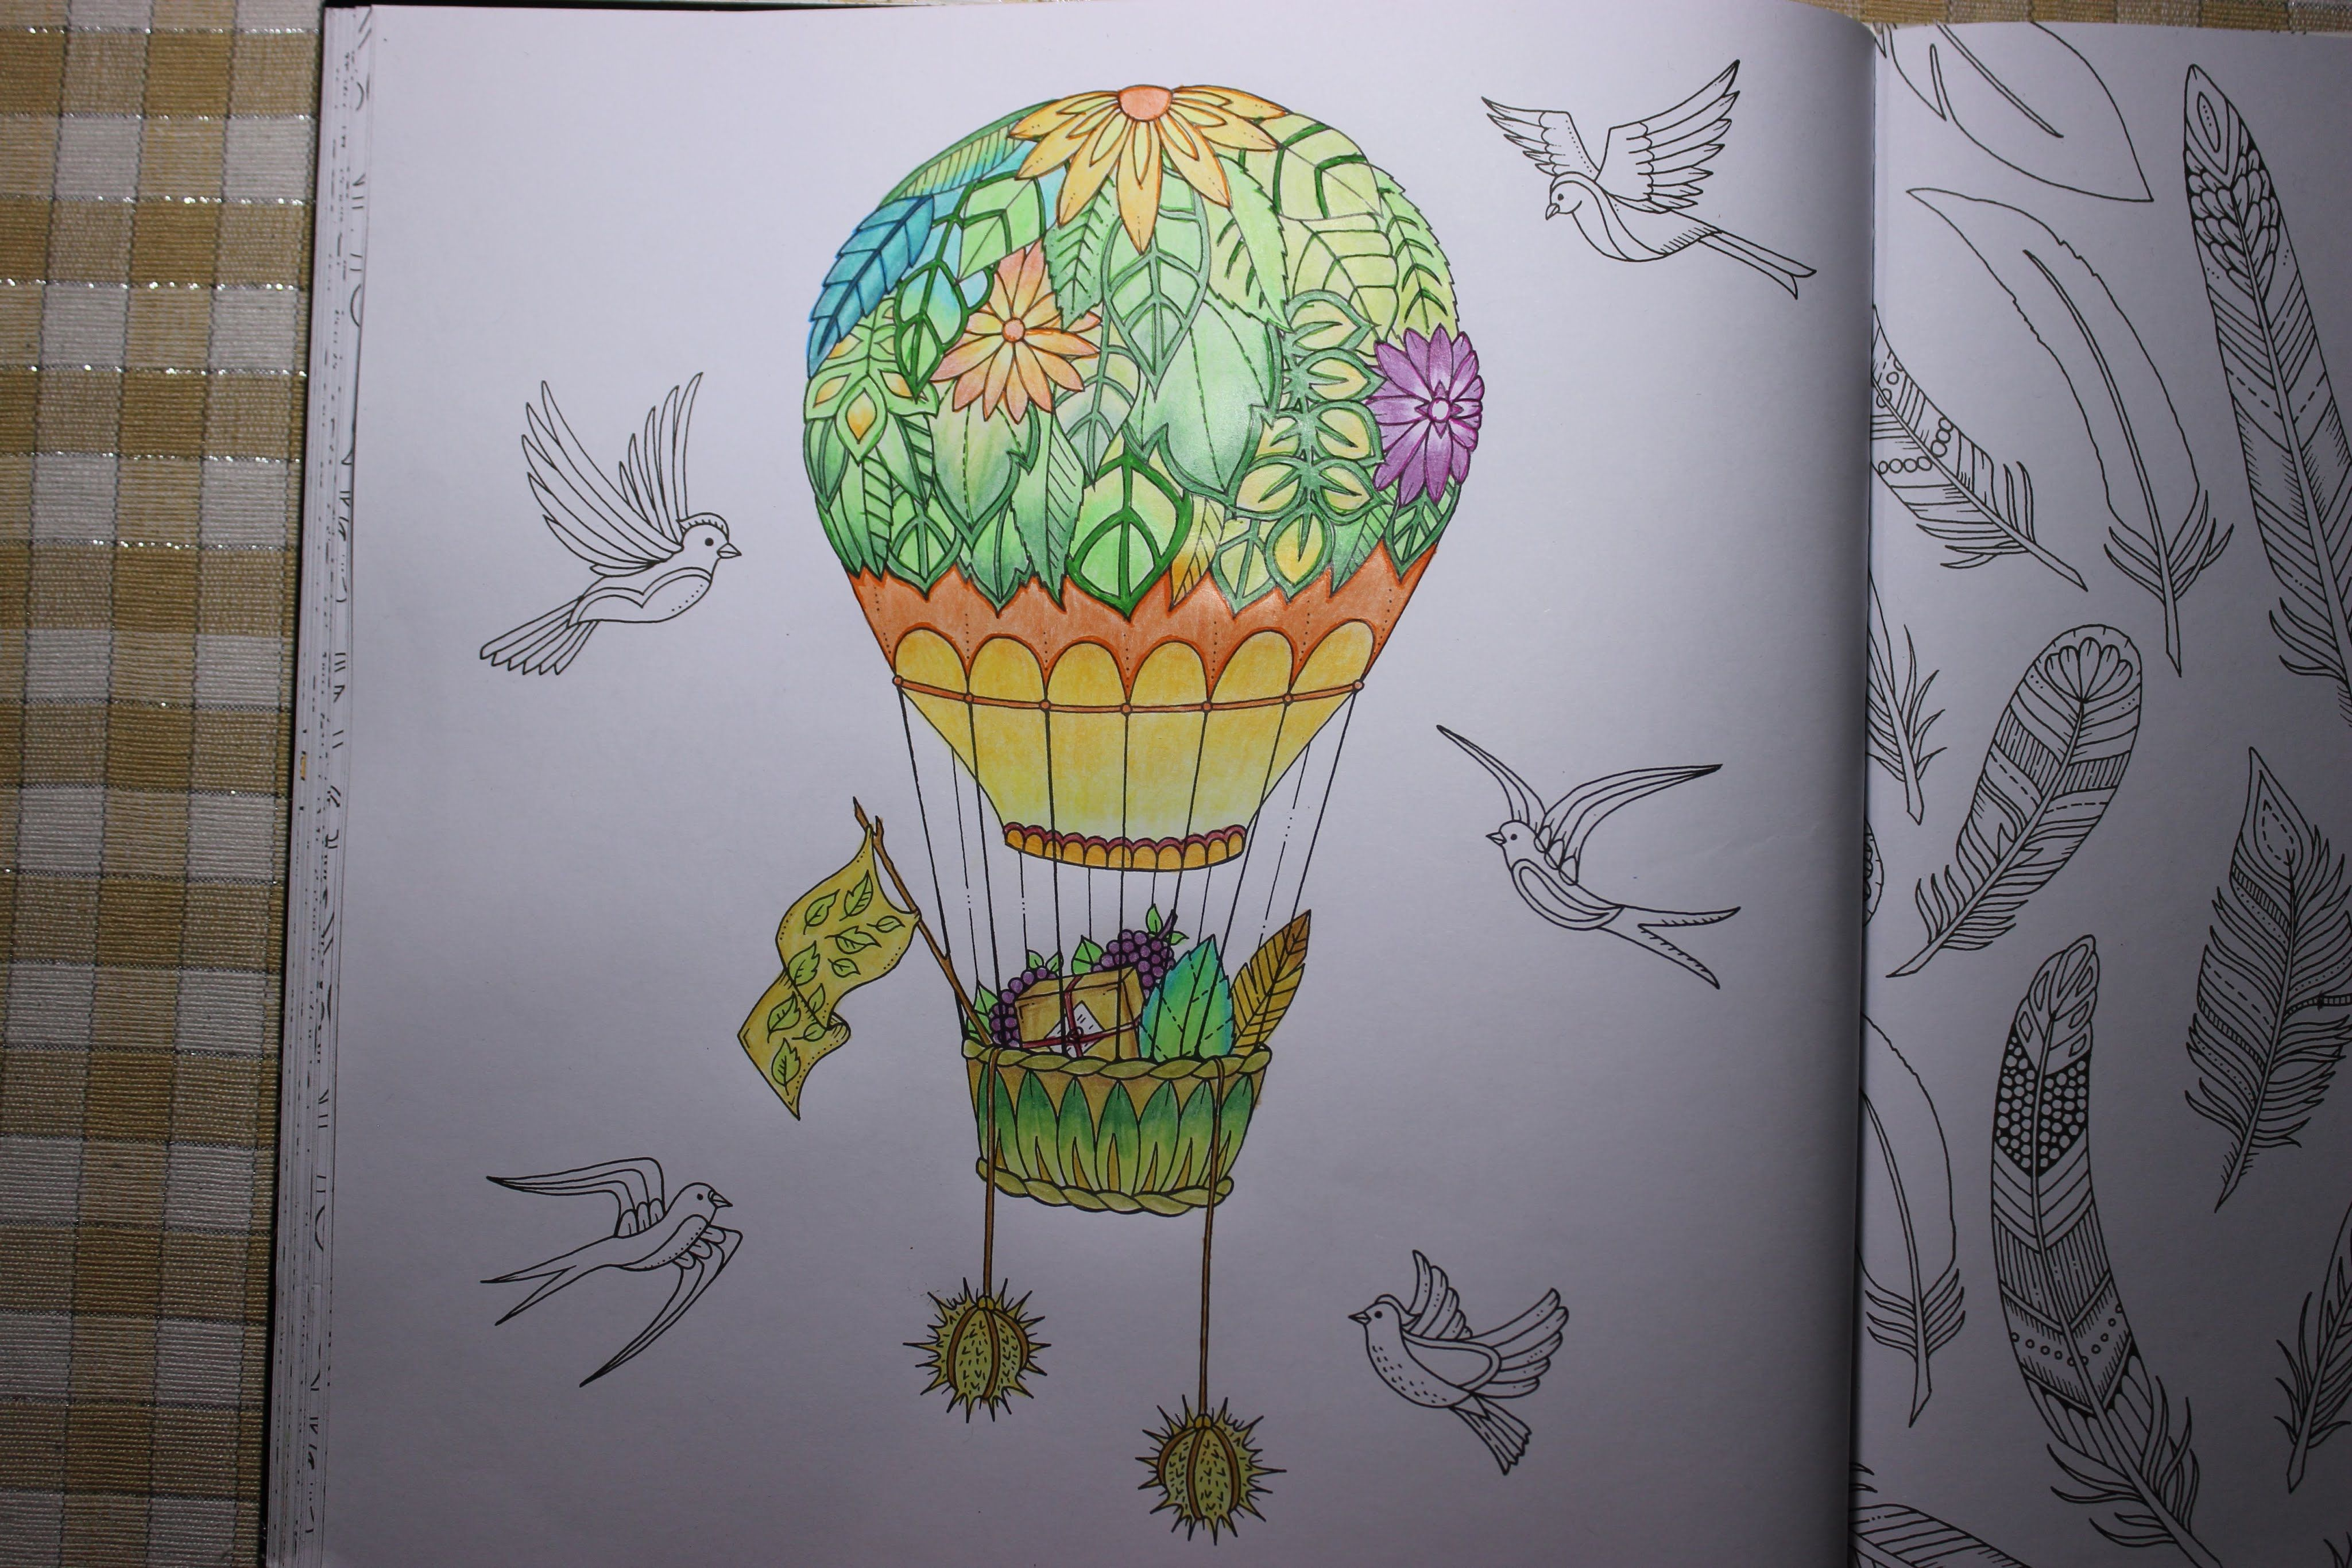 Enchanted Forest Coloring Book Air Balloon Part 2 Forest Coloring Book Enchanted Forest Coloring Book Coloring Books